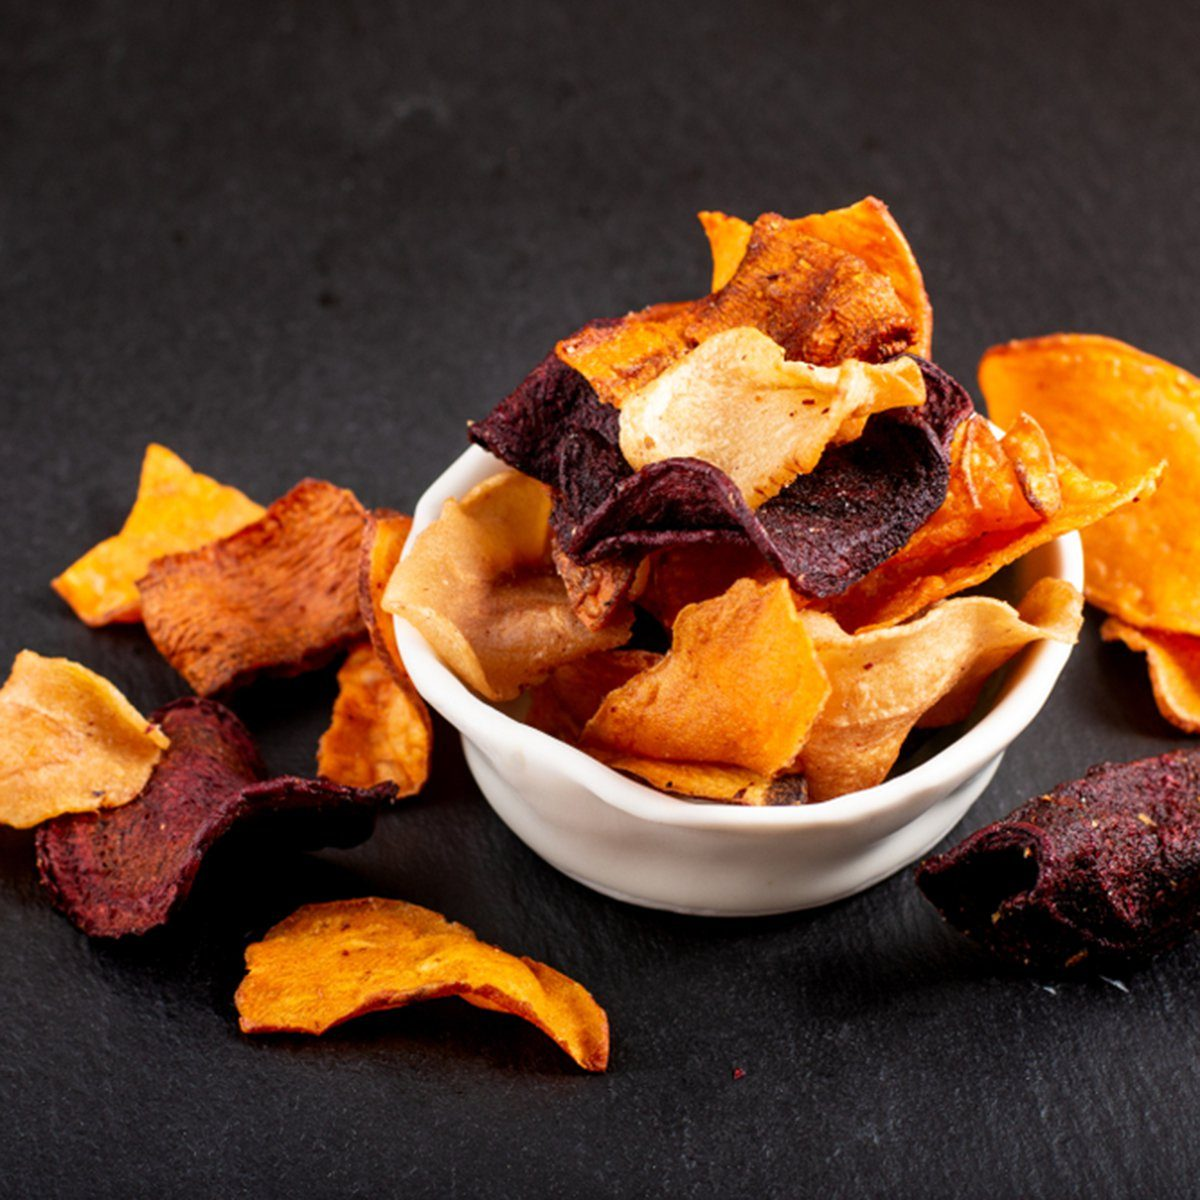 Food concept assortment of vegetable chips on black slate plate